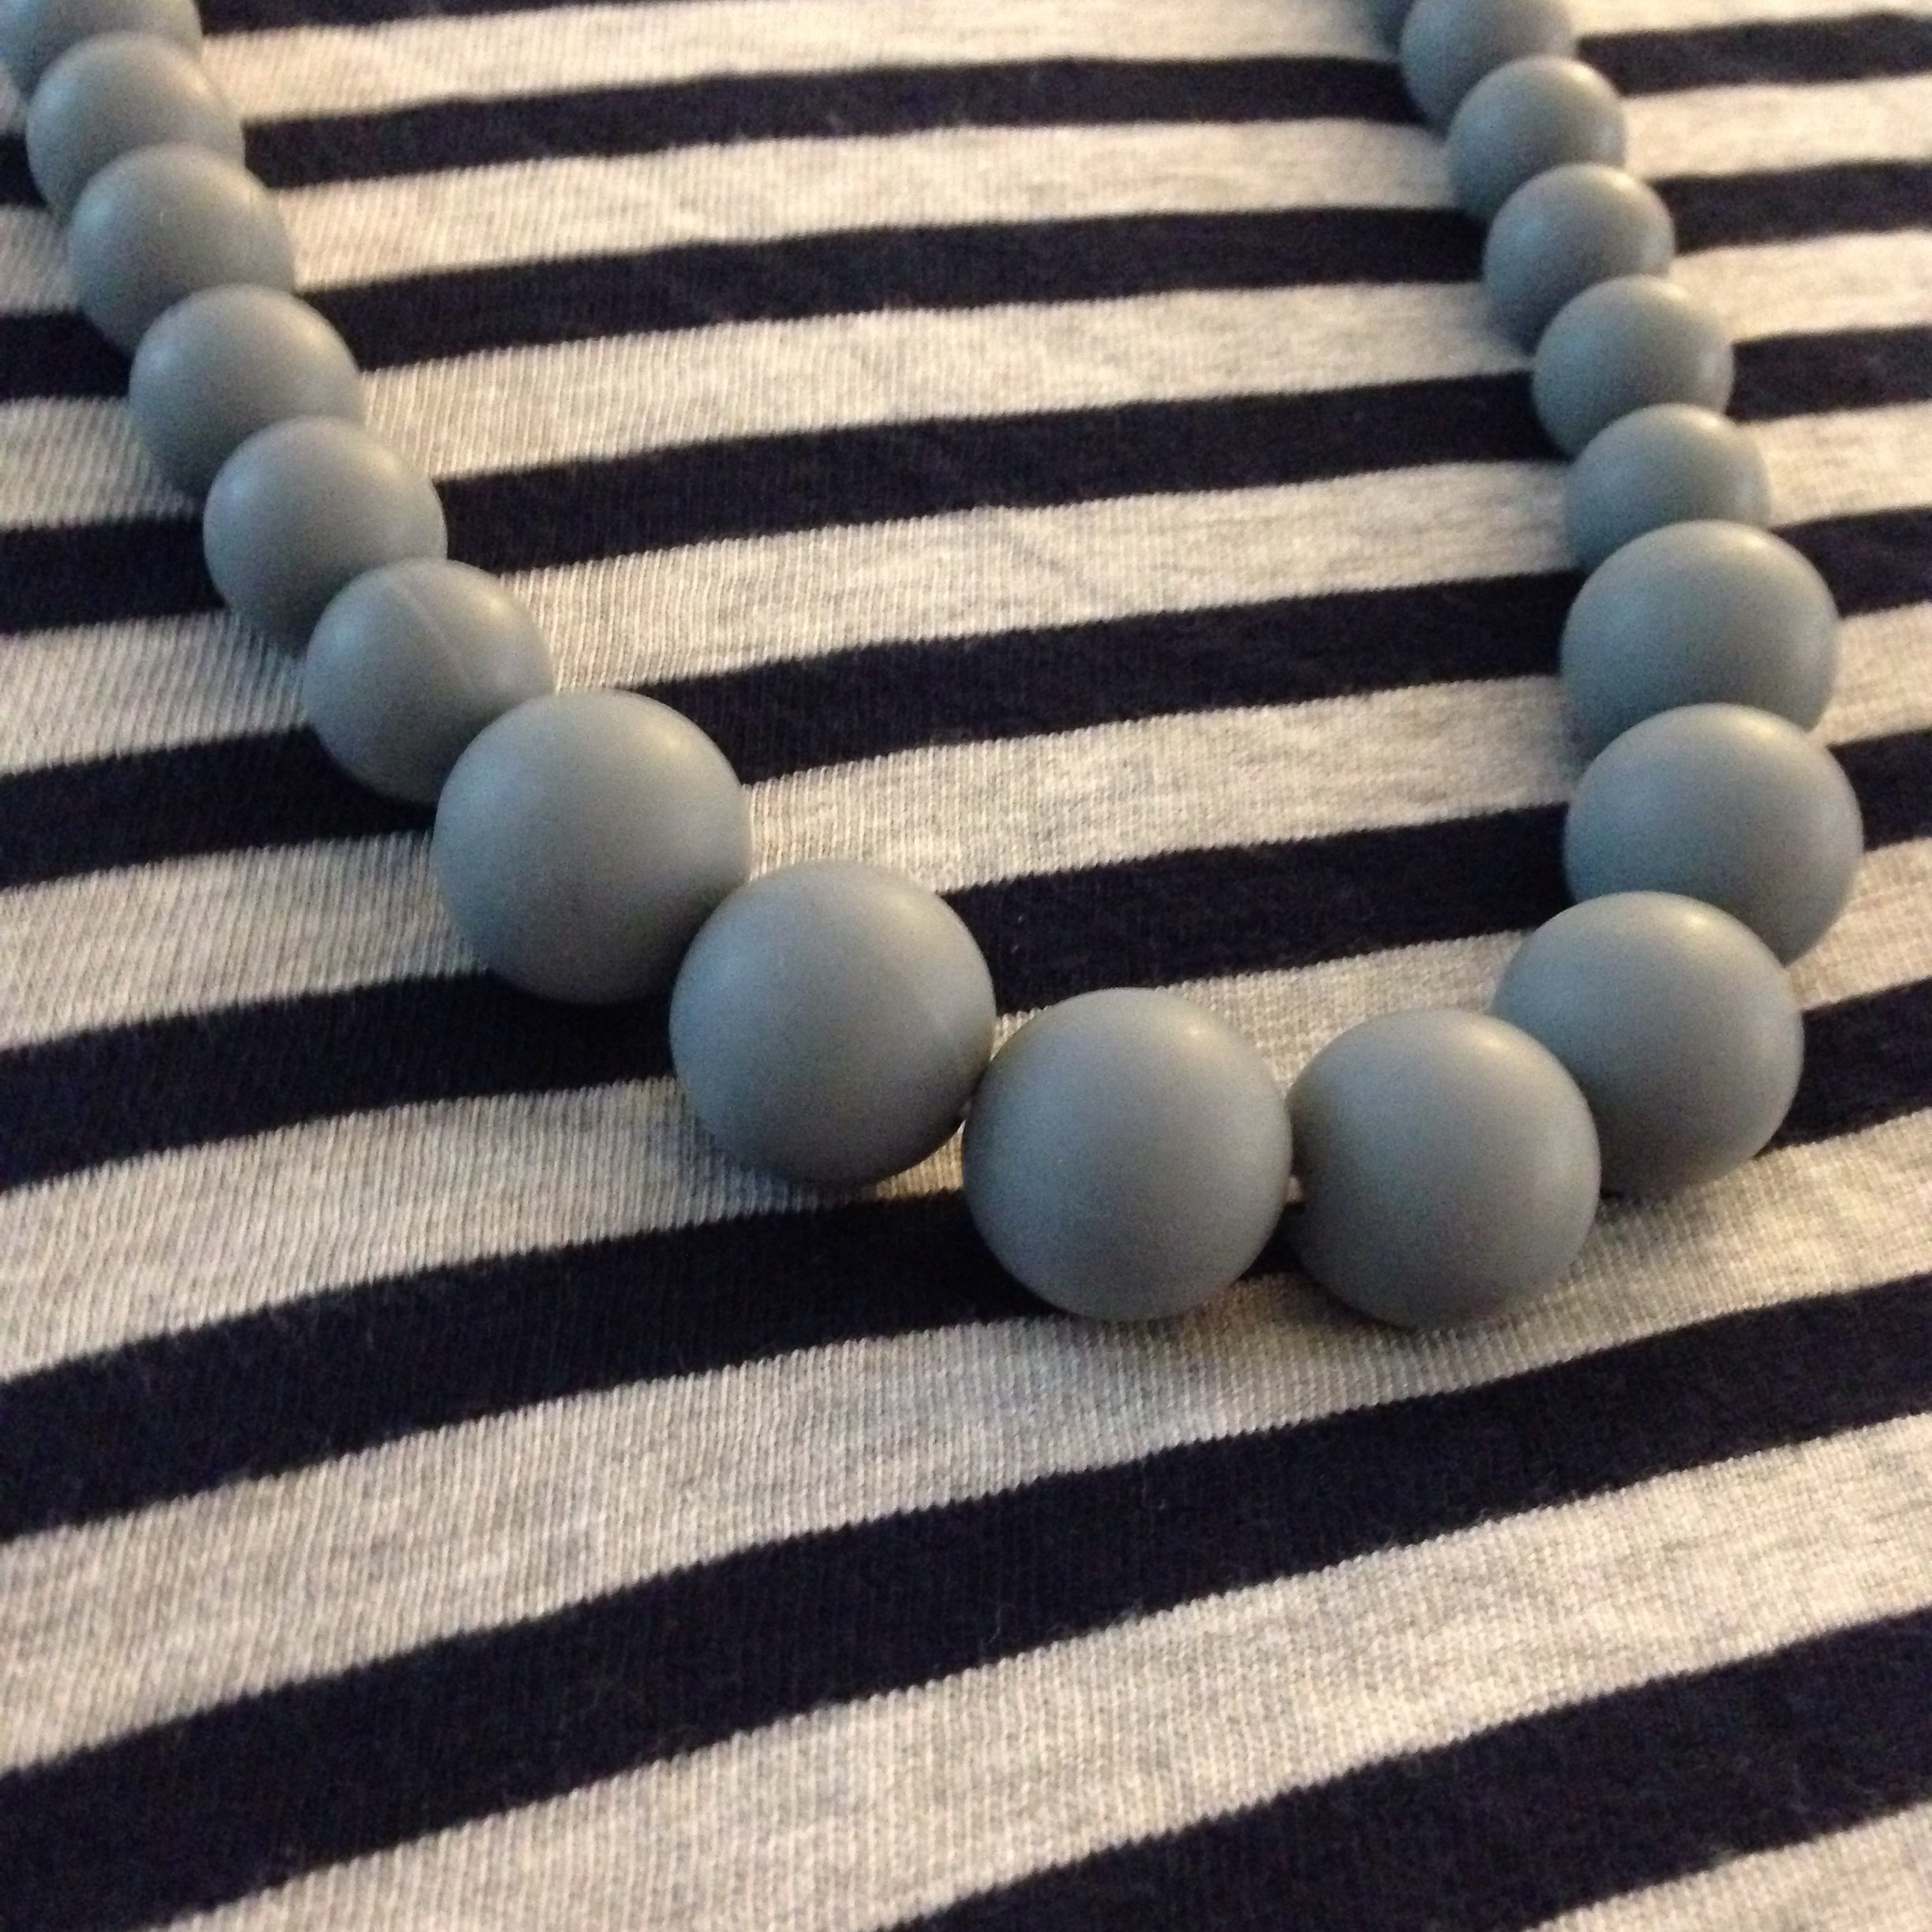 Just love the grey pearl beaded necklace against the grey and navy stripes!